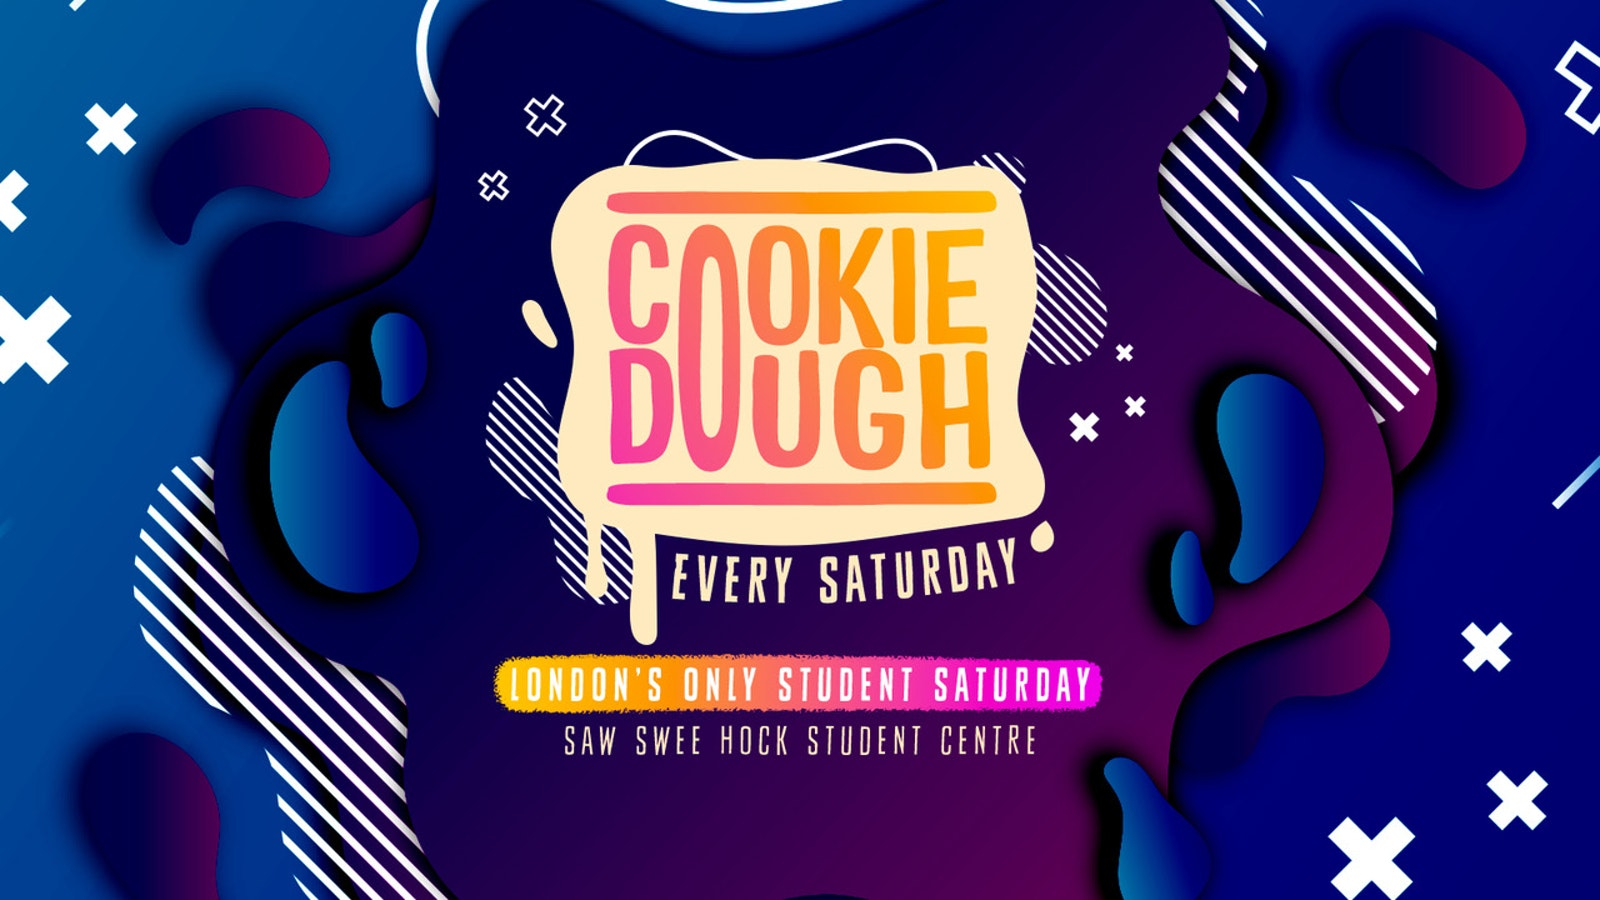 Cookie Dough / Every Saturday / 5.10